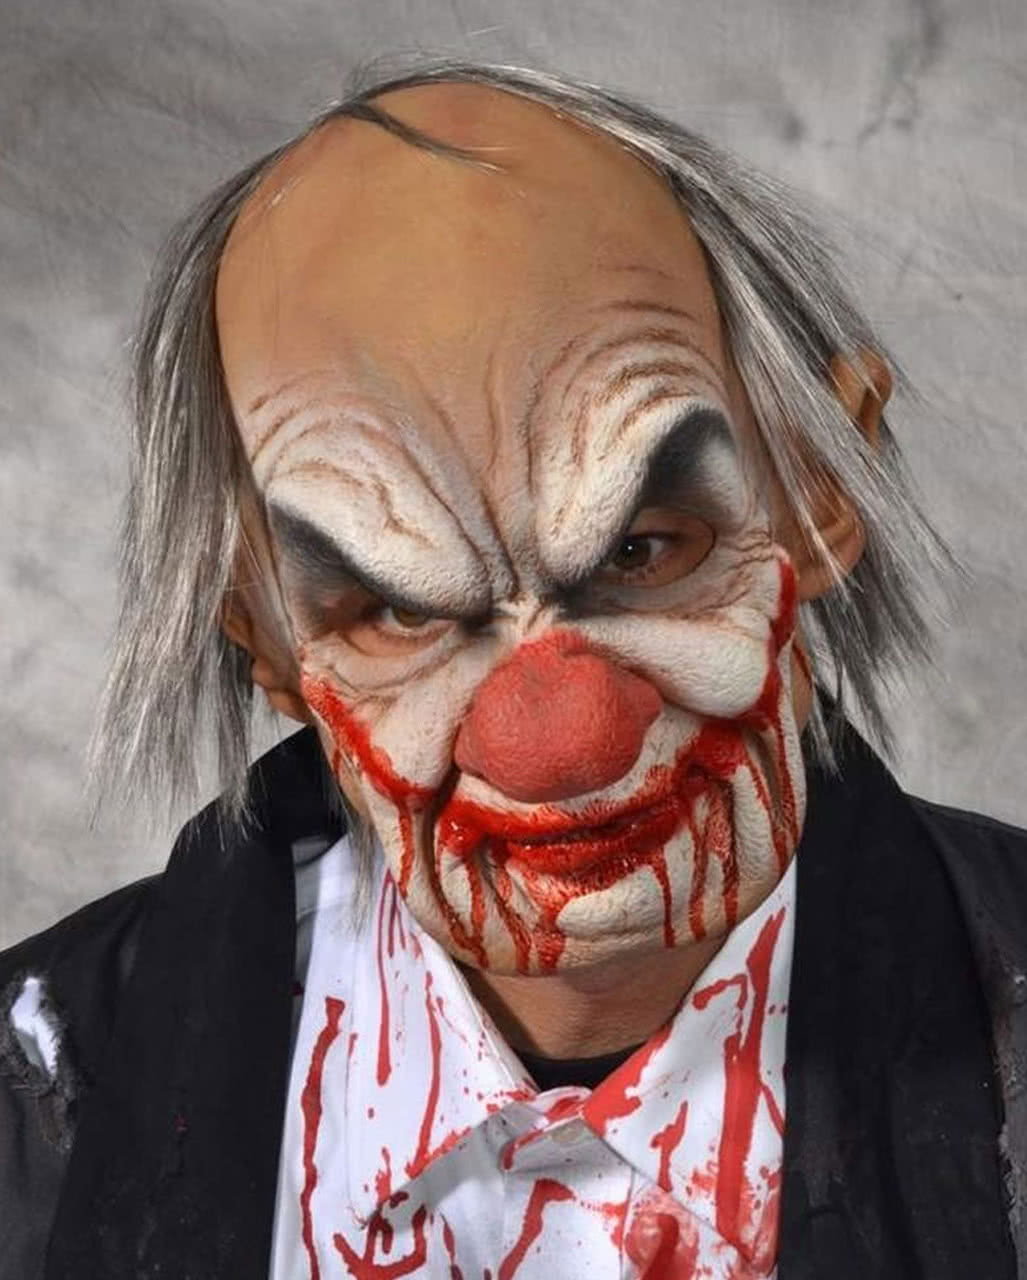 Smiley Horrorclown Mask For Halloween | horror-shop.com